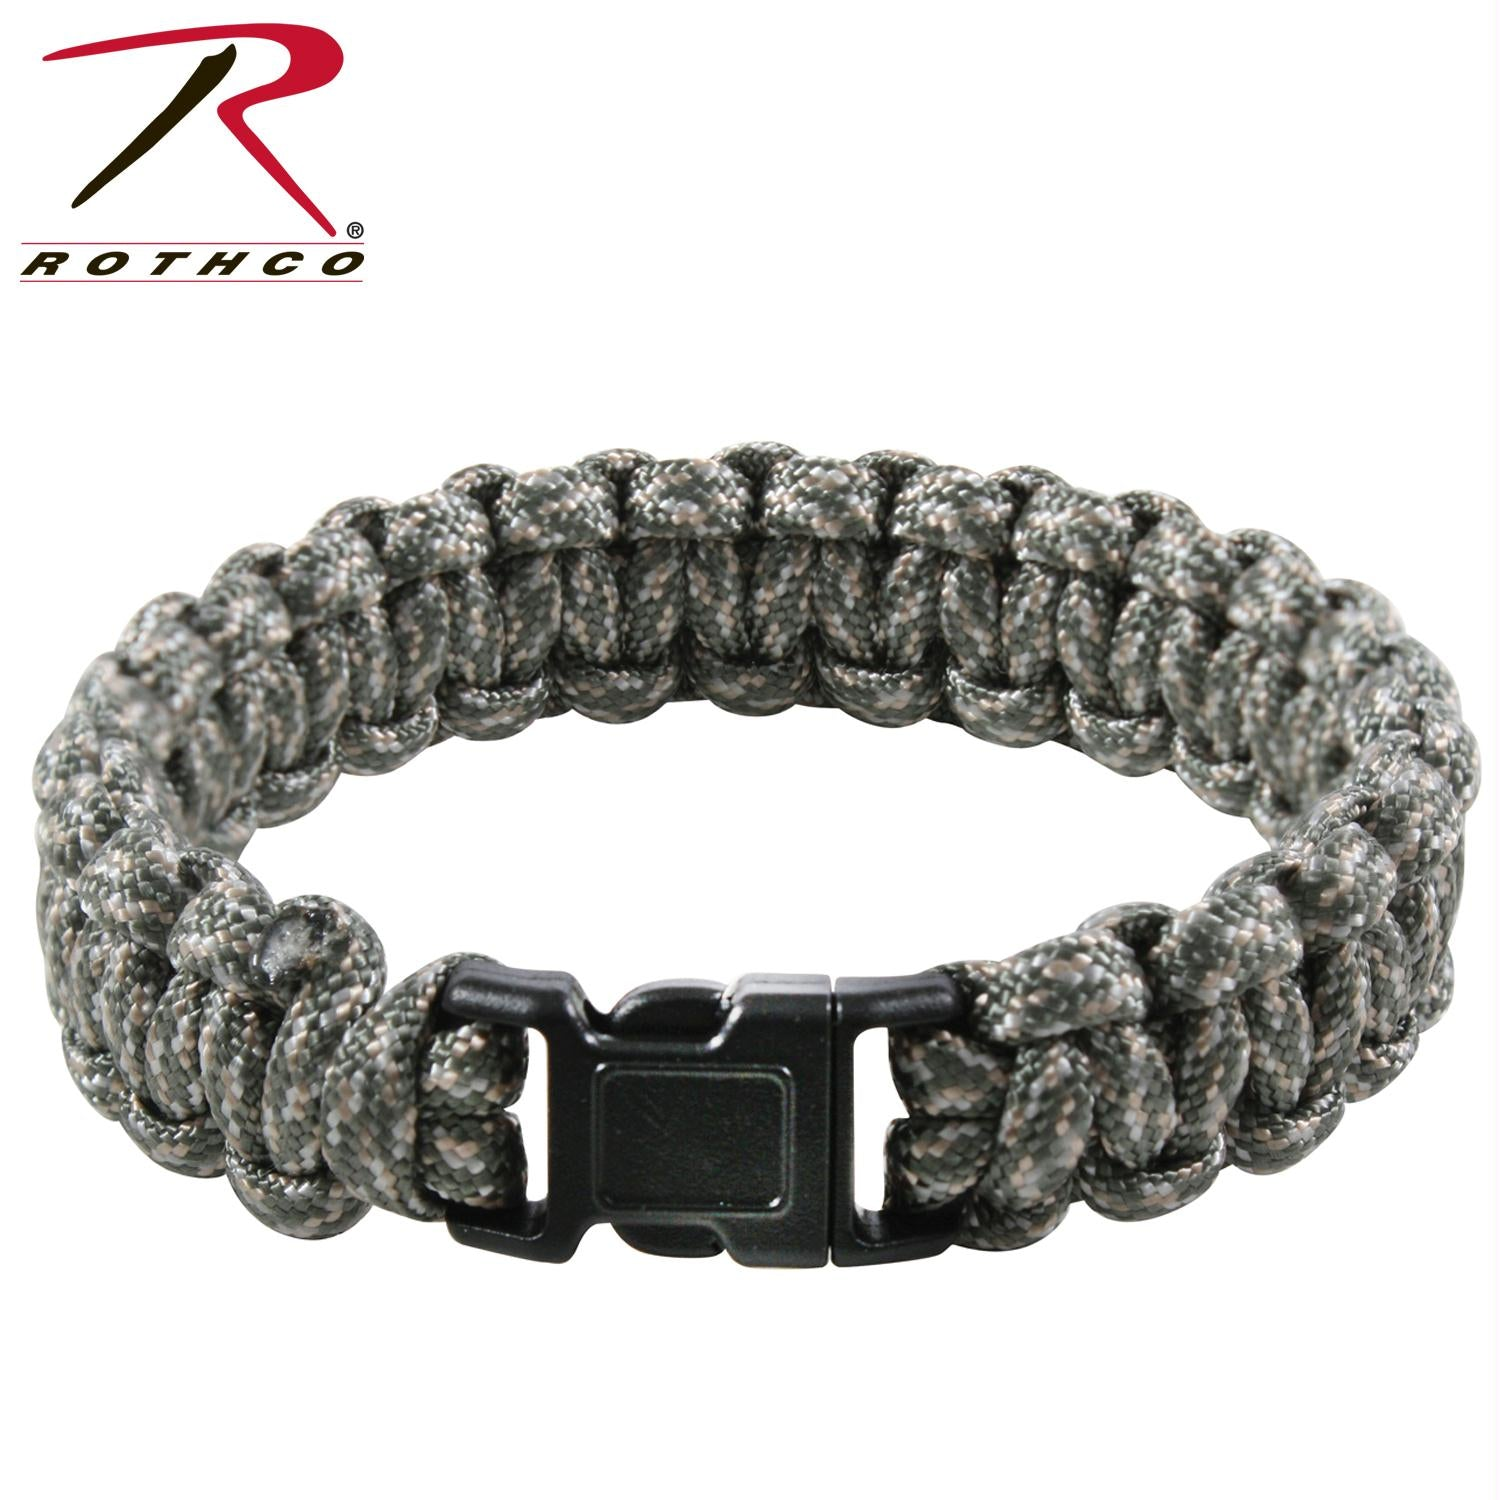 Rothco Multi-Colored Paracord Bracelet - Foliage Green / 7 Inches